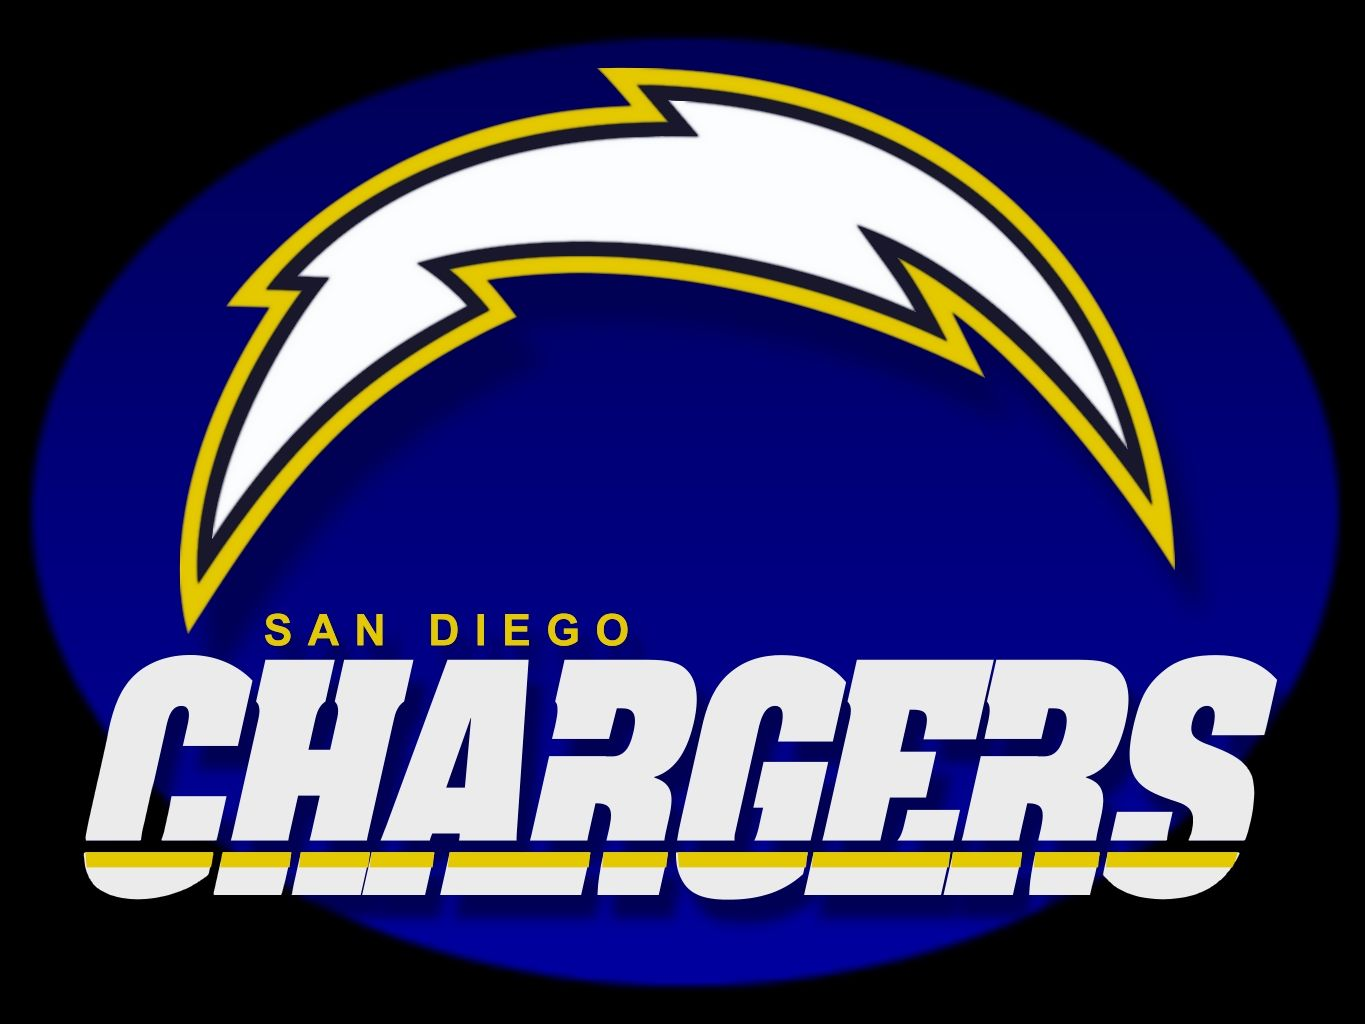 San Diego Chargers NFL JERSEYS